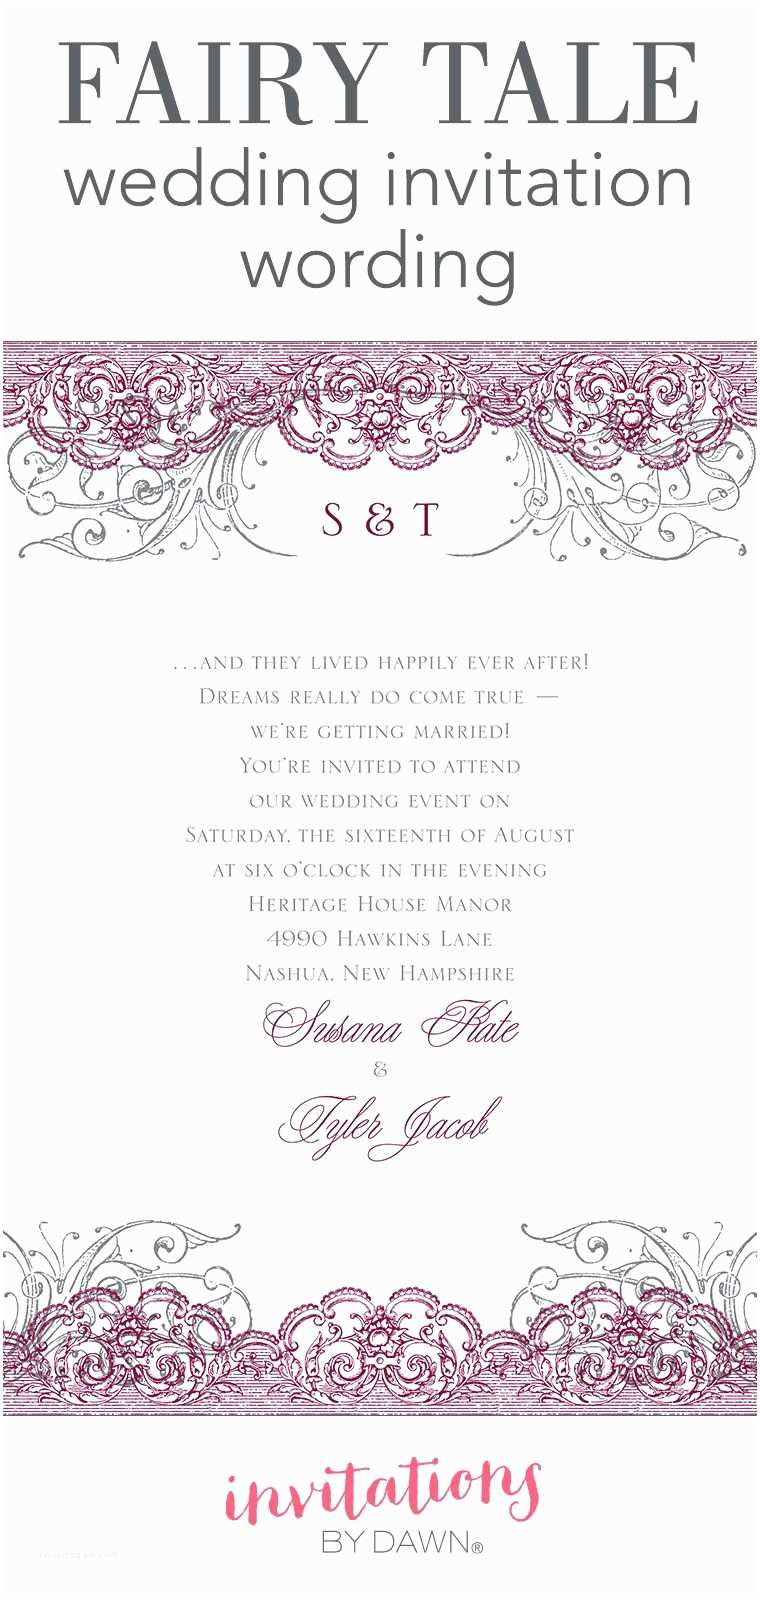 Romantic Wedding Invitations Wording Examples A Fairy Tale Romance Like Yours Deserves A Wedding